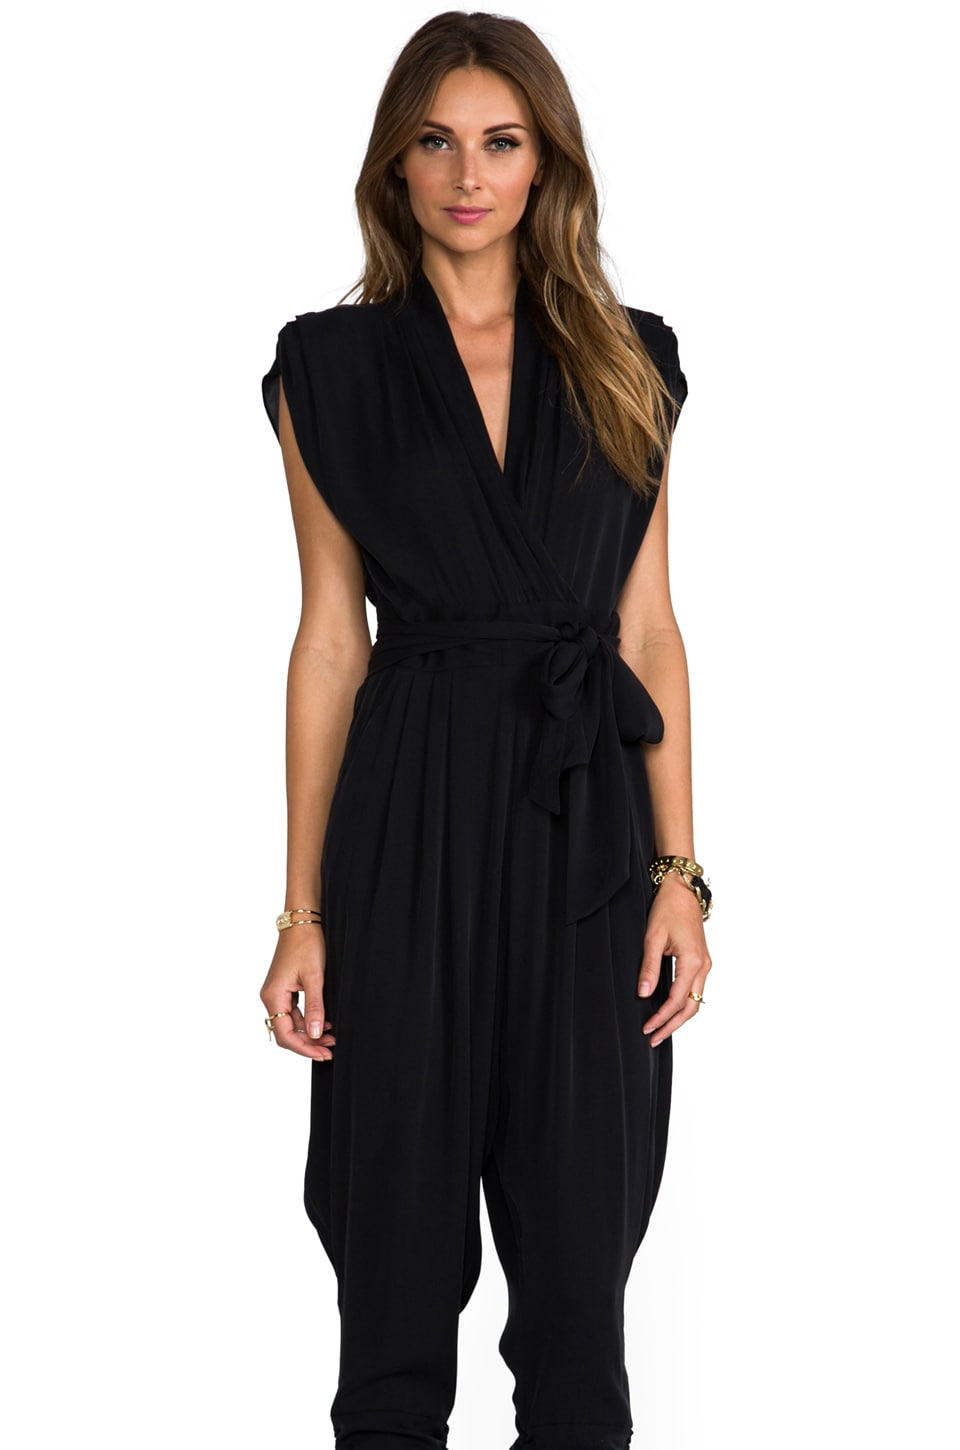 Catherine Malandrino Brigitte Favorites Jumpsuit in Noir